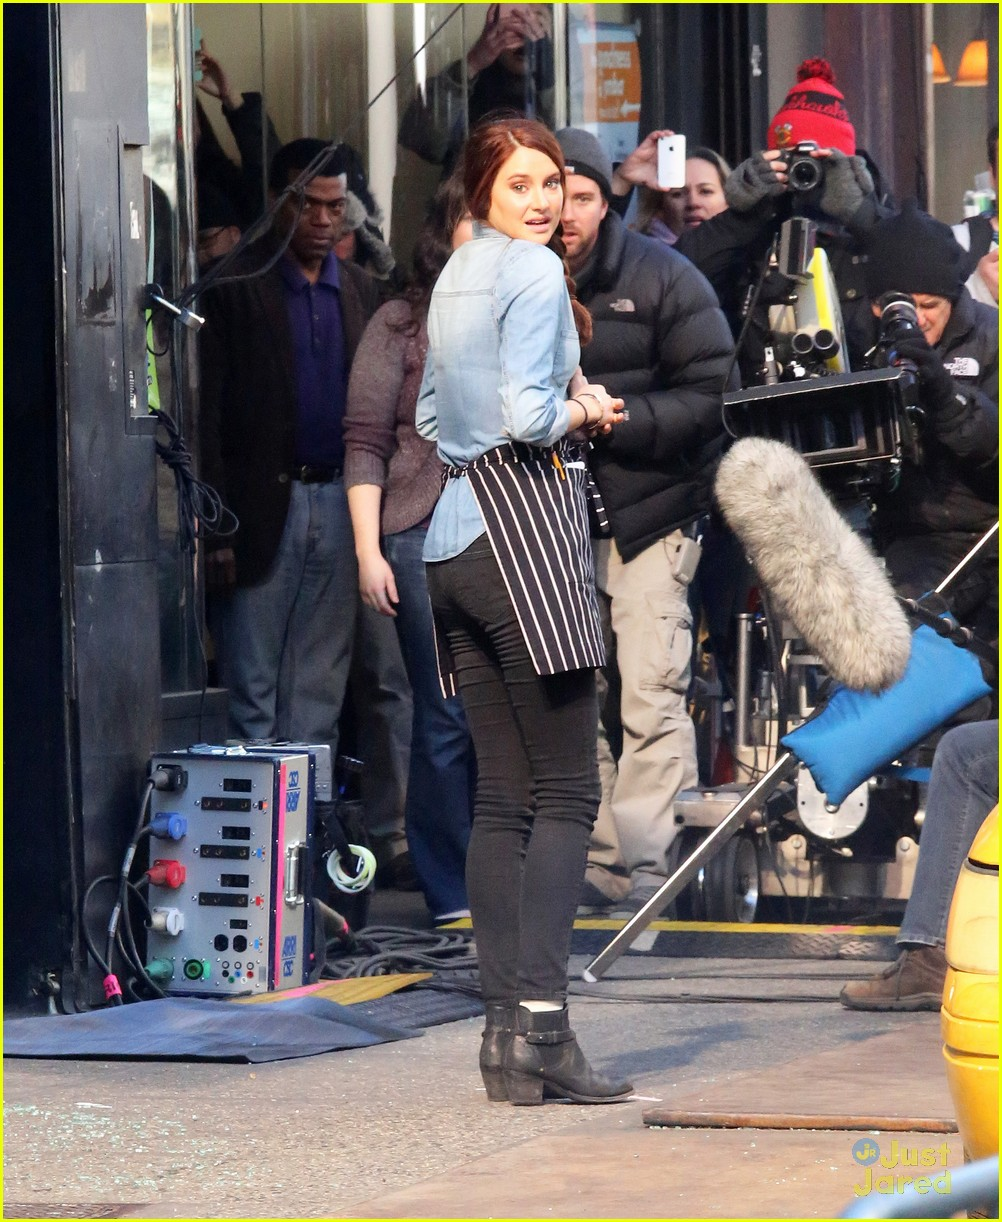 Shailene Woodley on the movie set of 'The Amazing Spider-Man 2' in NYC